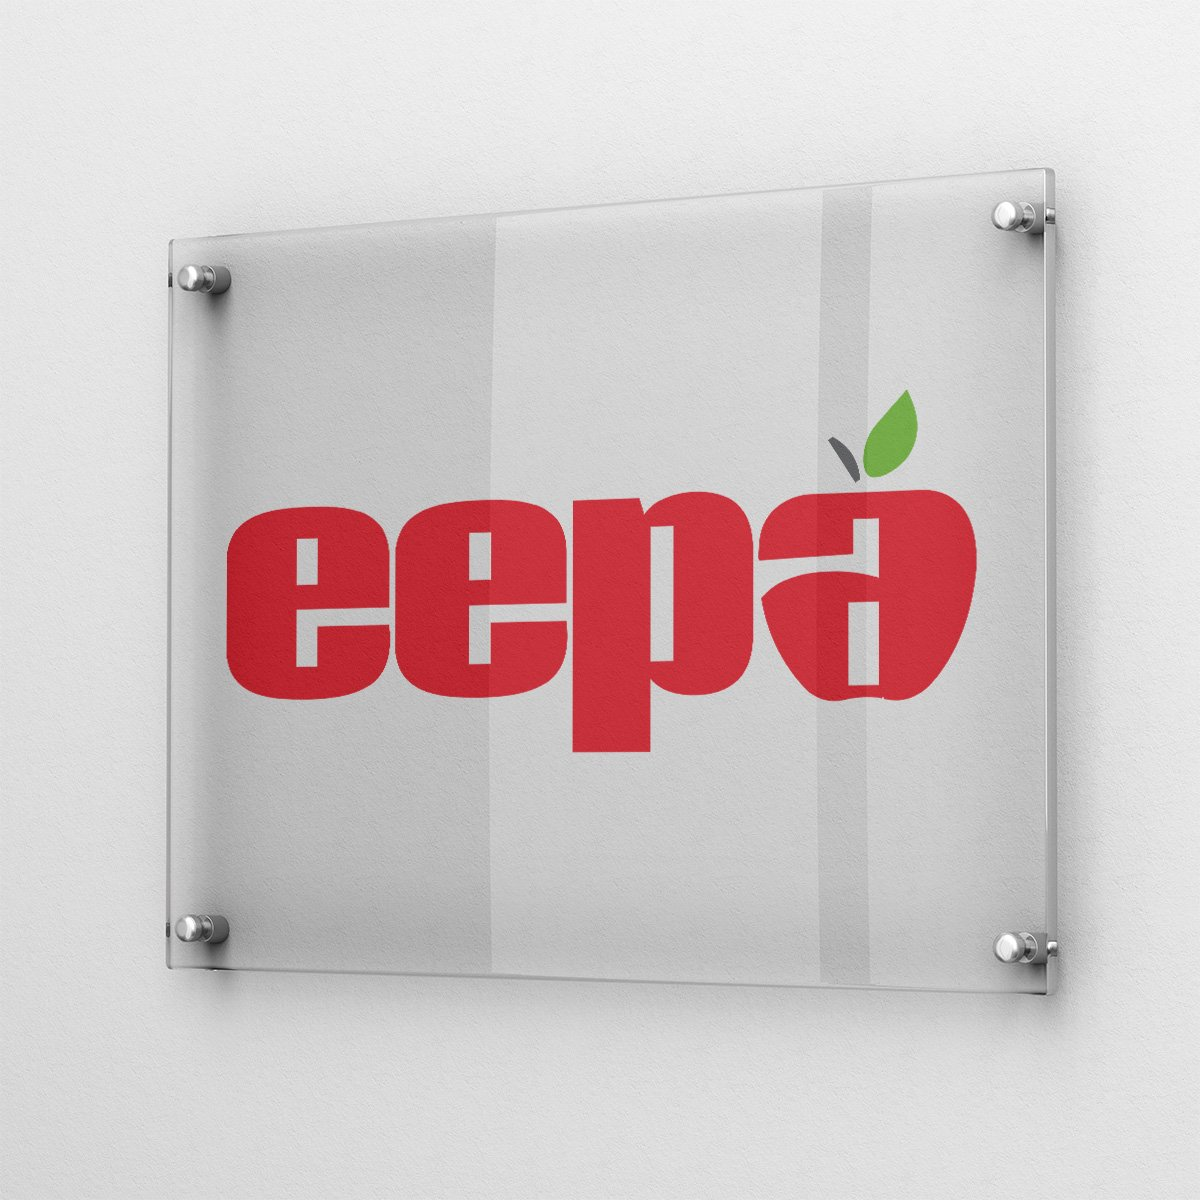 Delaware logo design for EEPA